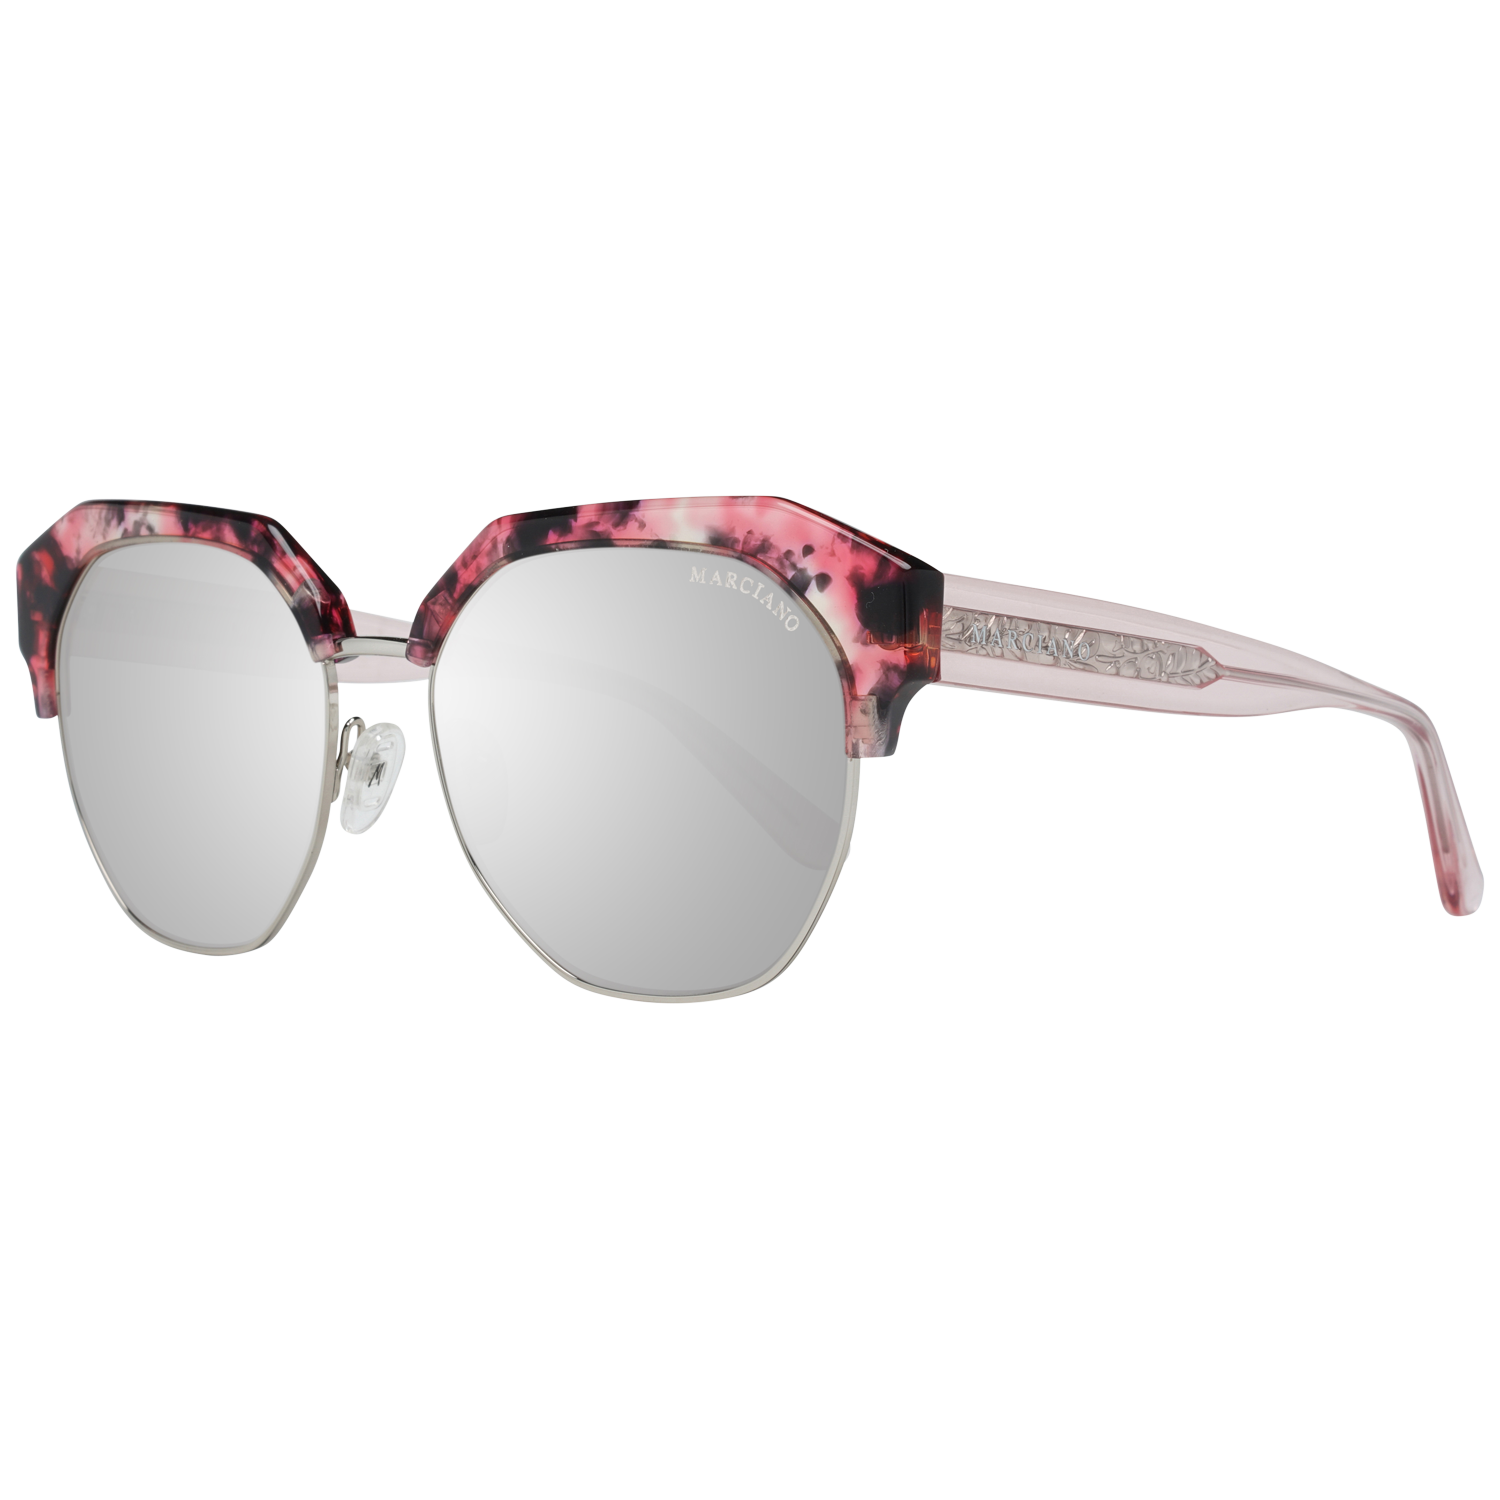 Guess by Marciano Sunglasses GM0798 54Z 55 Women Pink